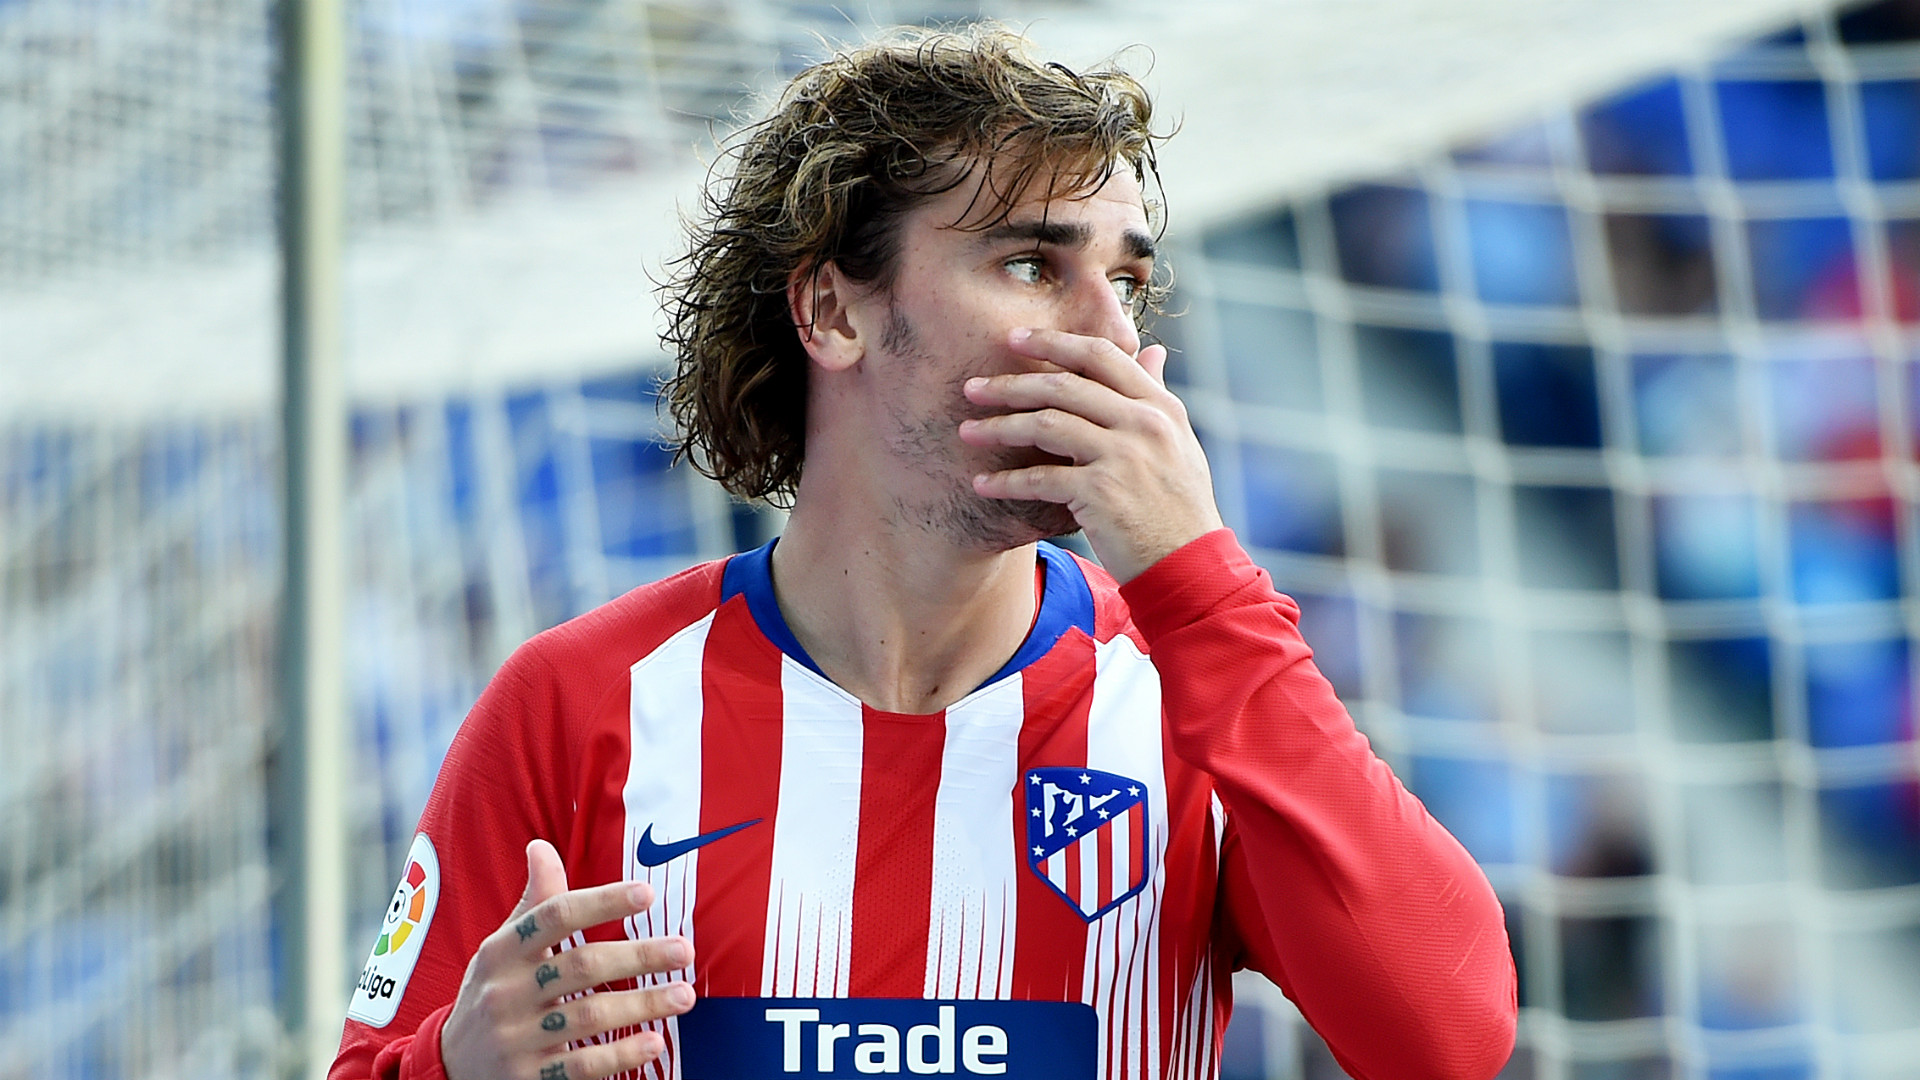 Griezmann annuncia l'addio all'Atletico Madrid, via libera al Barcellona